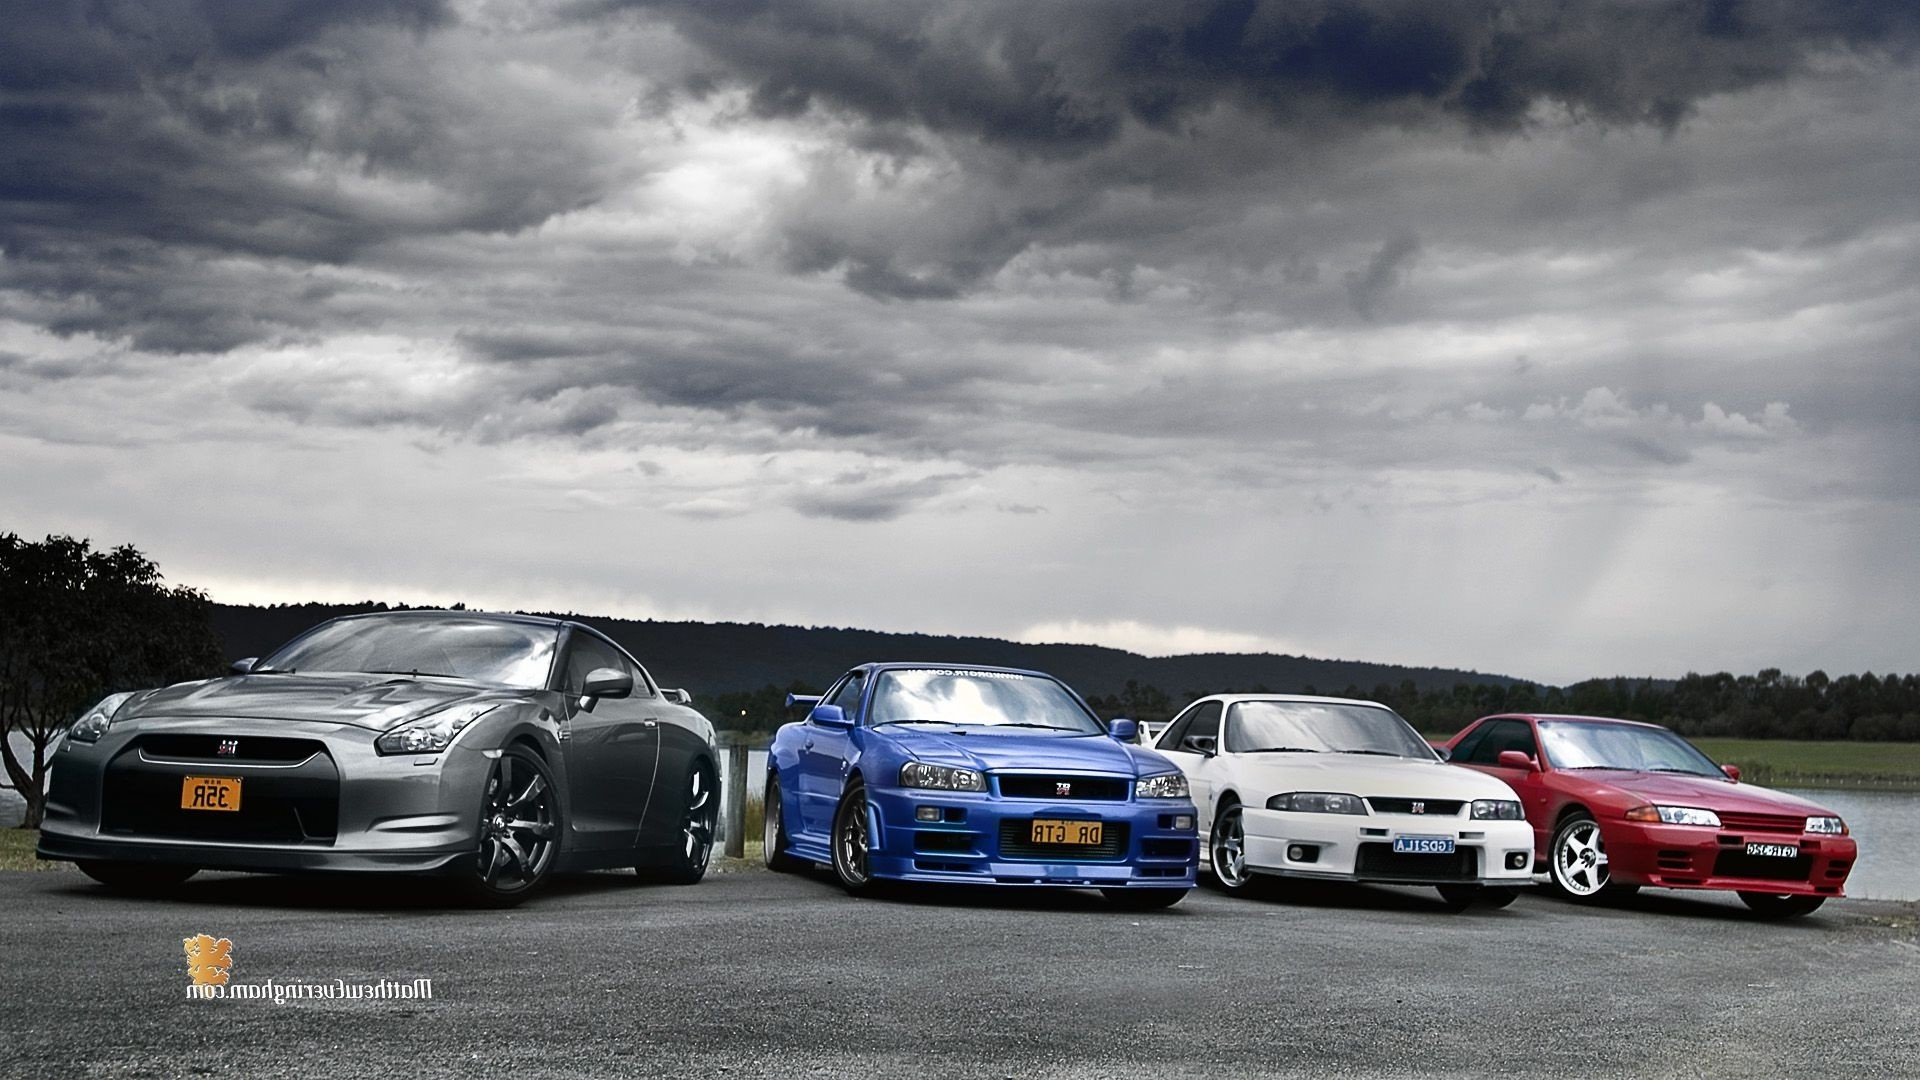 1920x1080 Skyline R Wallpapers Group 800×500 Nissan Skyline GTR R34 Wallpapers |  Adorable Wallpapers